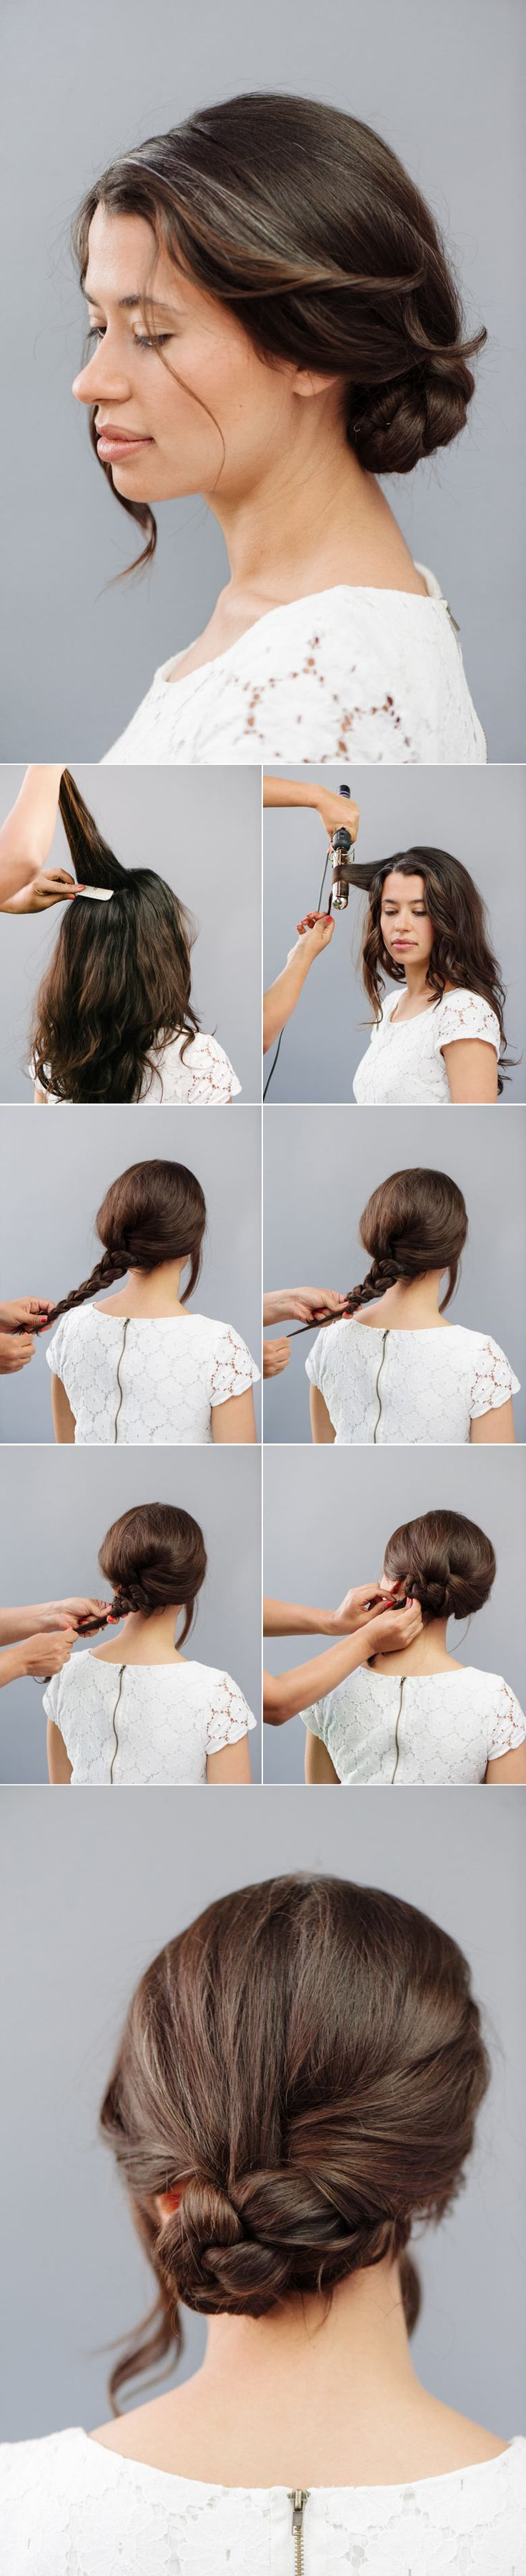 How To: Braided Bun (with the best braid trick you've EVER seen.)